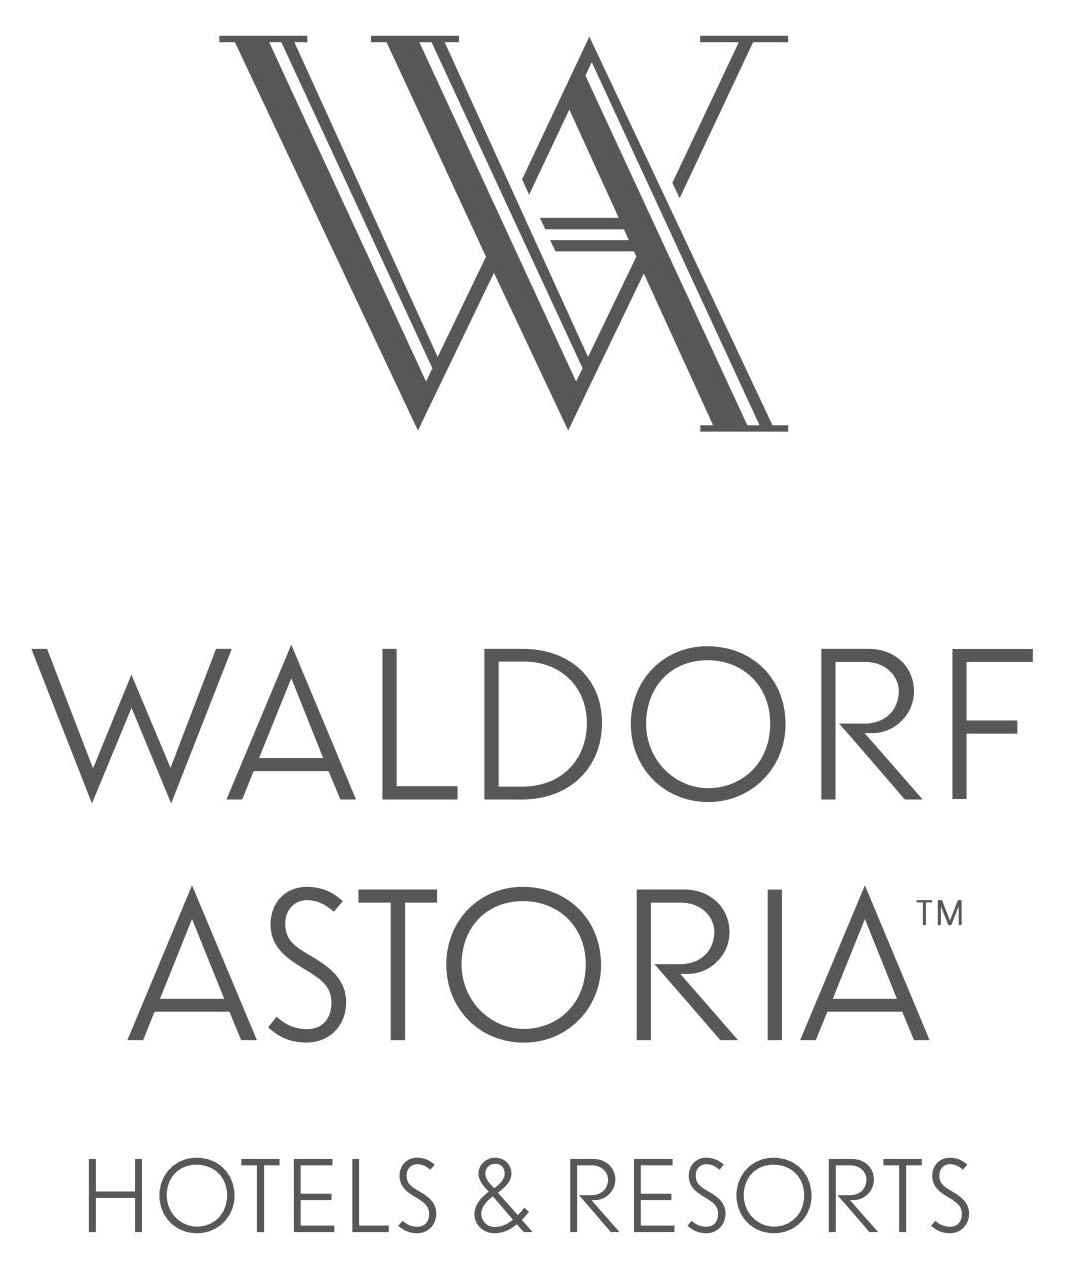 waldorf astoria logo vector